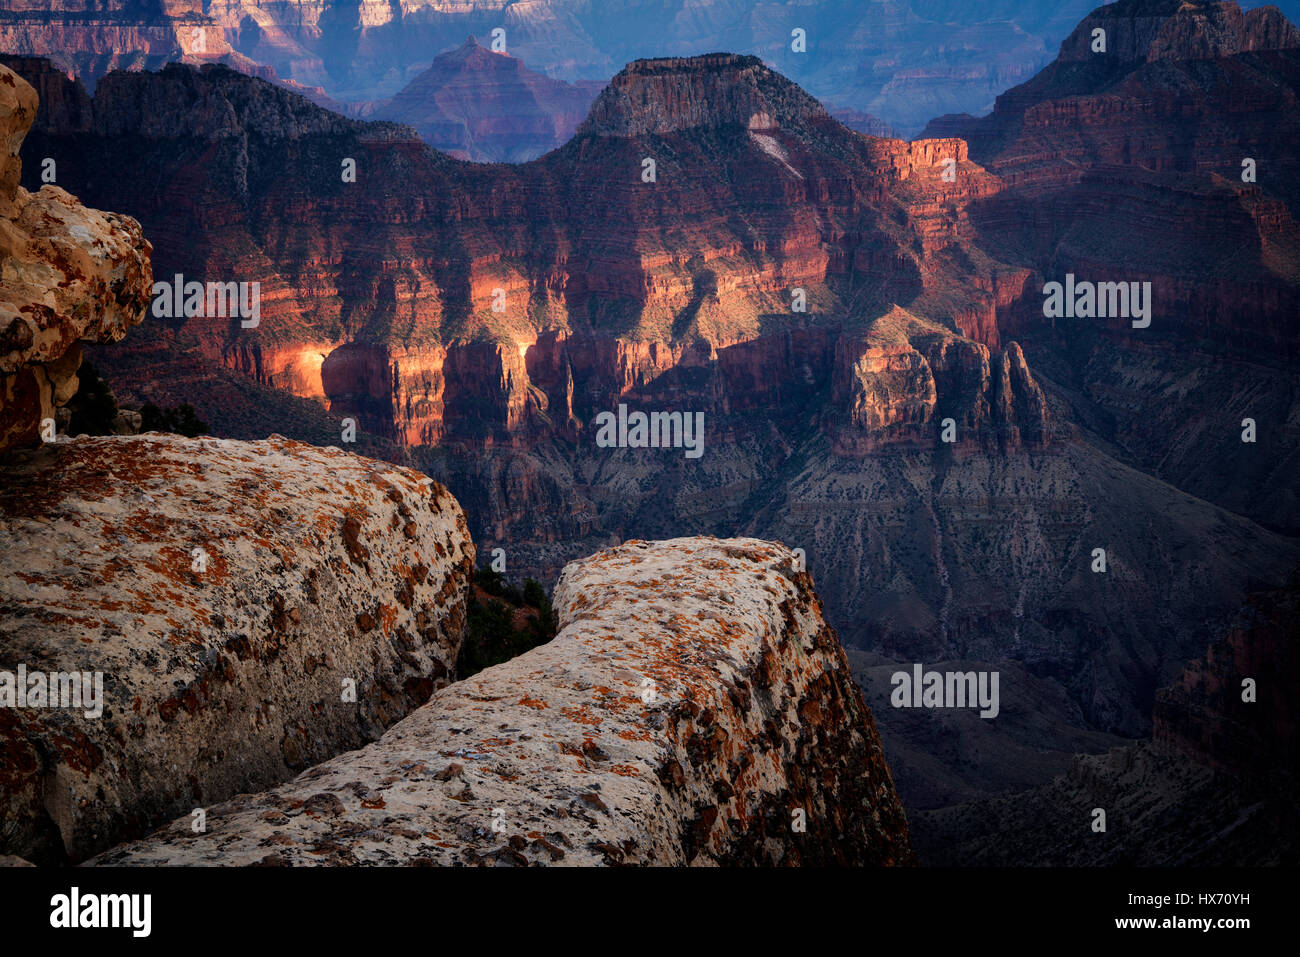 View of Grand Canyon from Bright Angel Point. North Rim of Grand Canyon National Park, Arizona Stock Photo